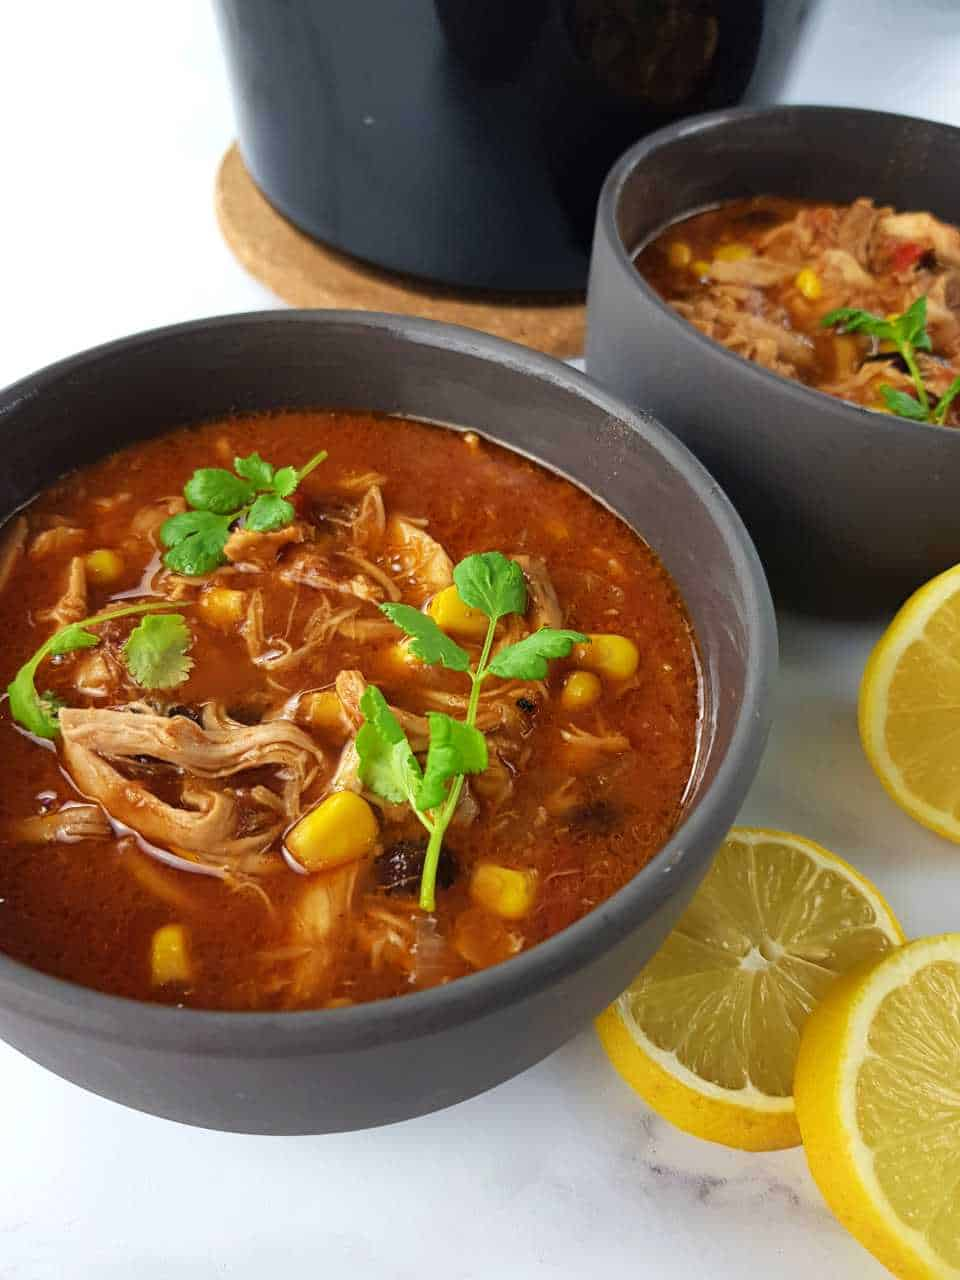 Slow cooker chicken taco soup in gray bowls.